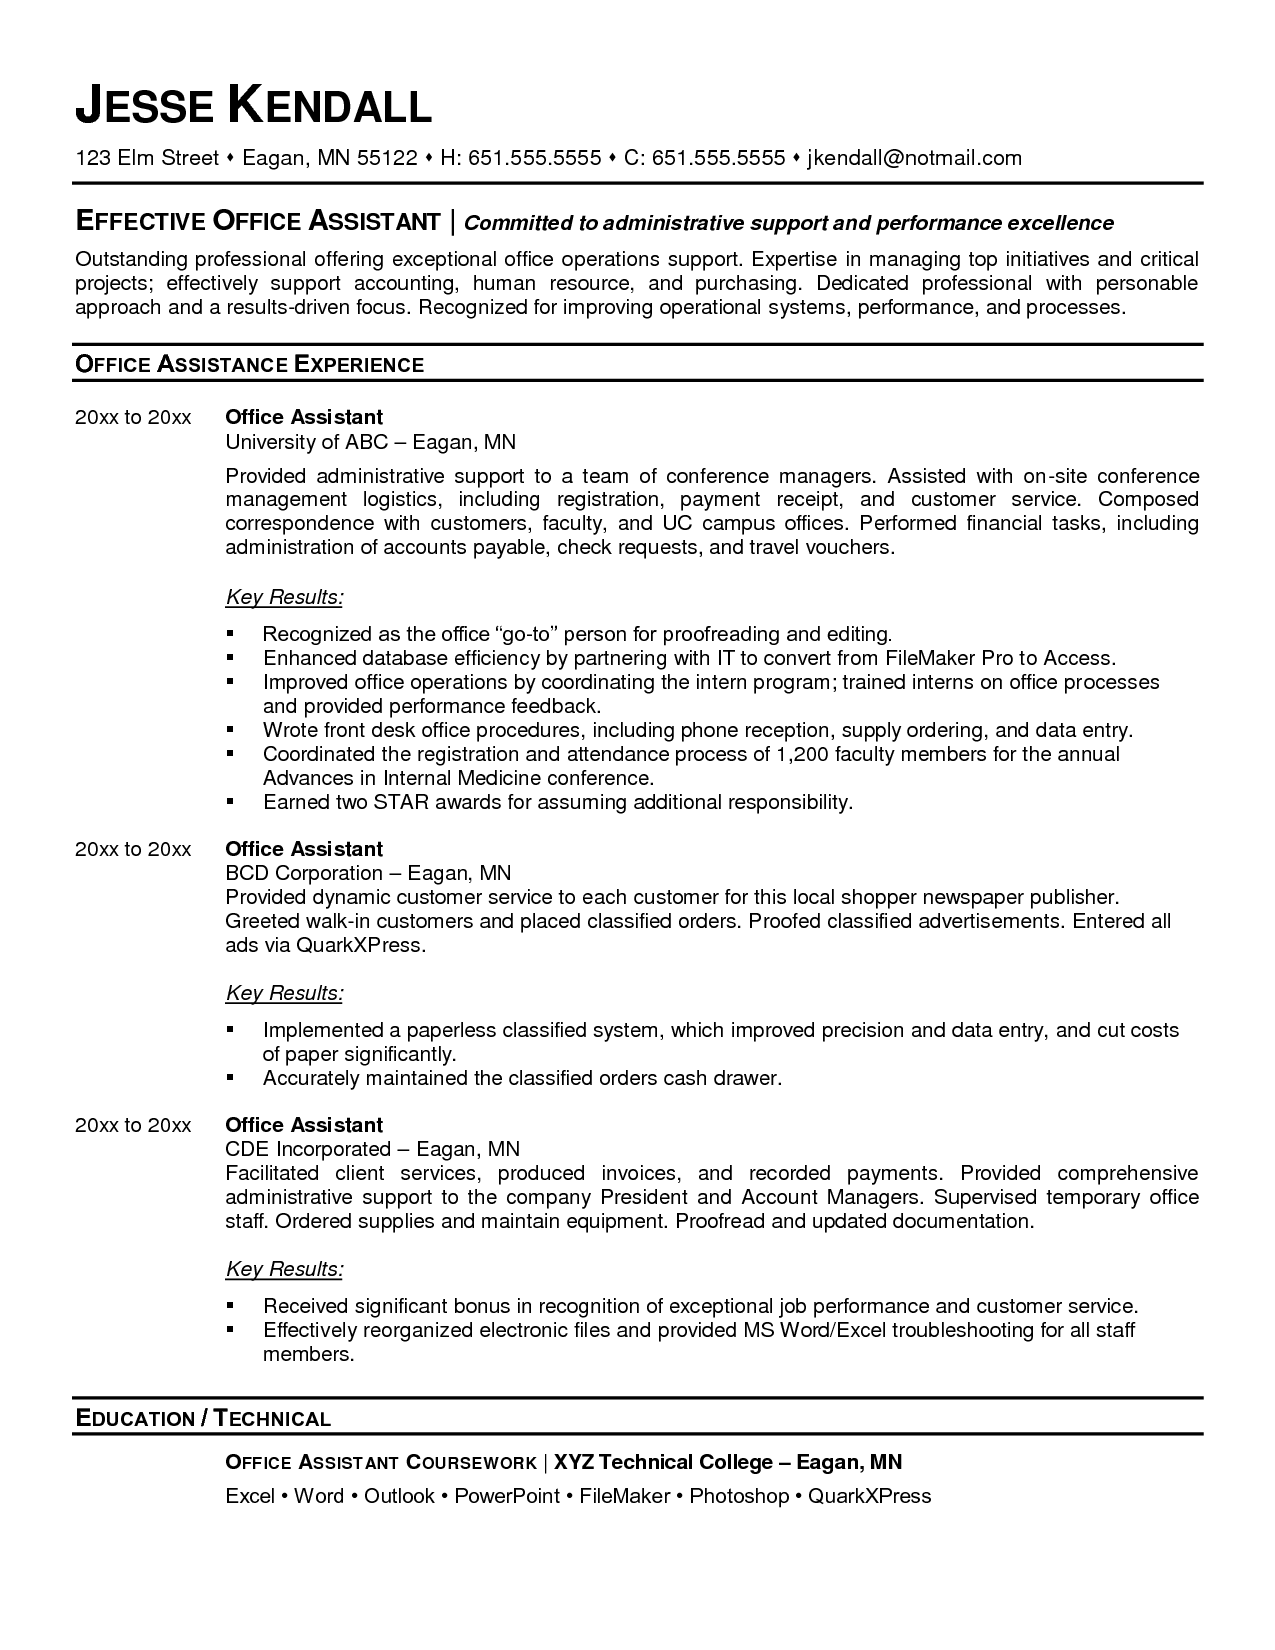 medical office administrative assistant resume sample resume for administrative assistant at medical office jesse kendall - Technical Administrative Assistant Sample Resume